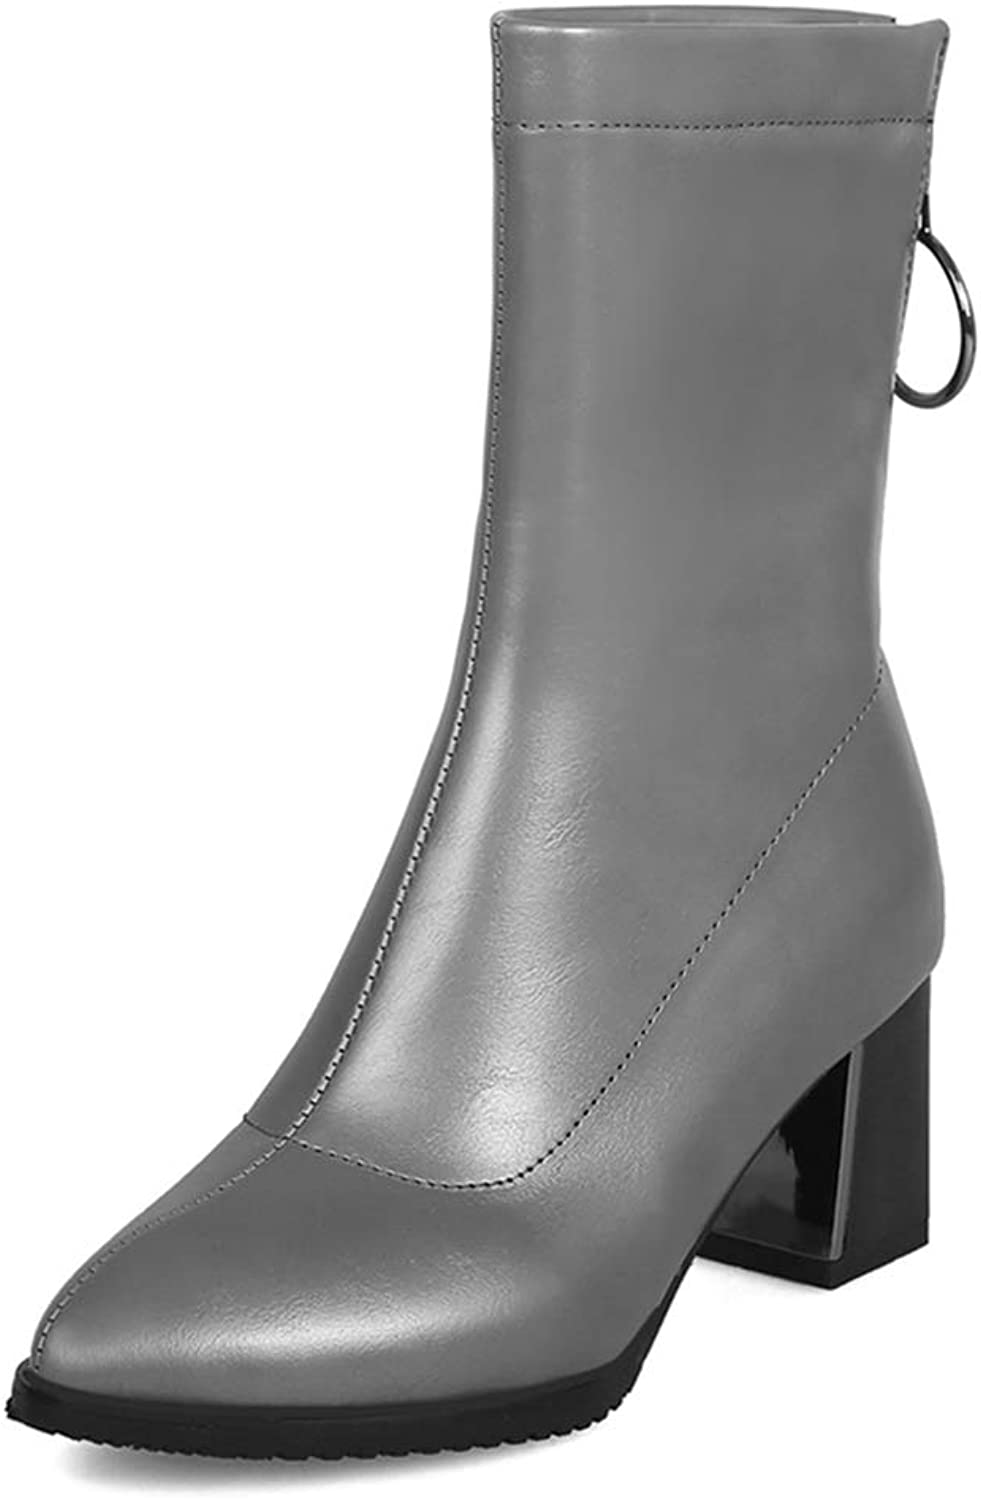 GIY Women's Pointed Toe Dressy Western Chunky Ankle Boots Platform Metallic Zip Bootie Martin Short Boots